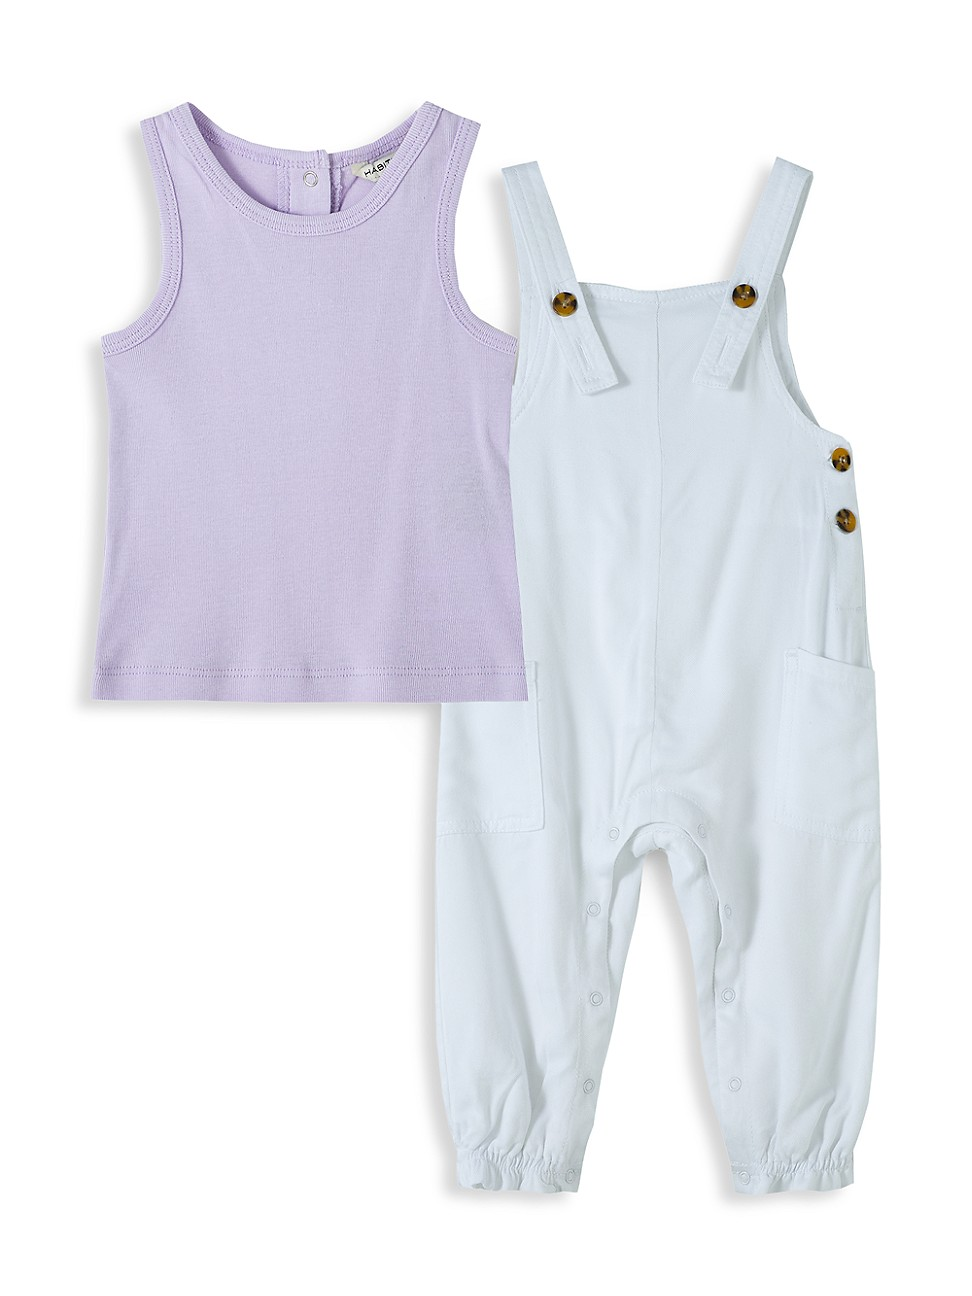 Habitual Cottons BABY GIRL'S 2-PIECE OVERALL SET